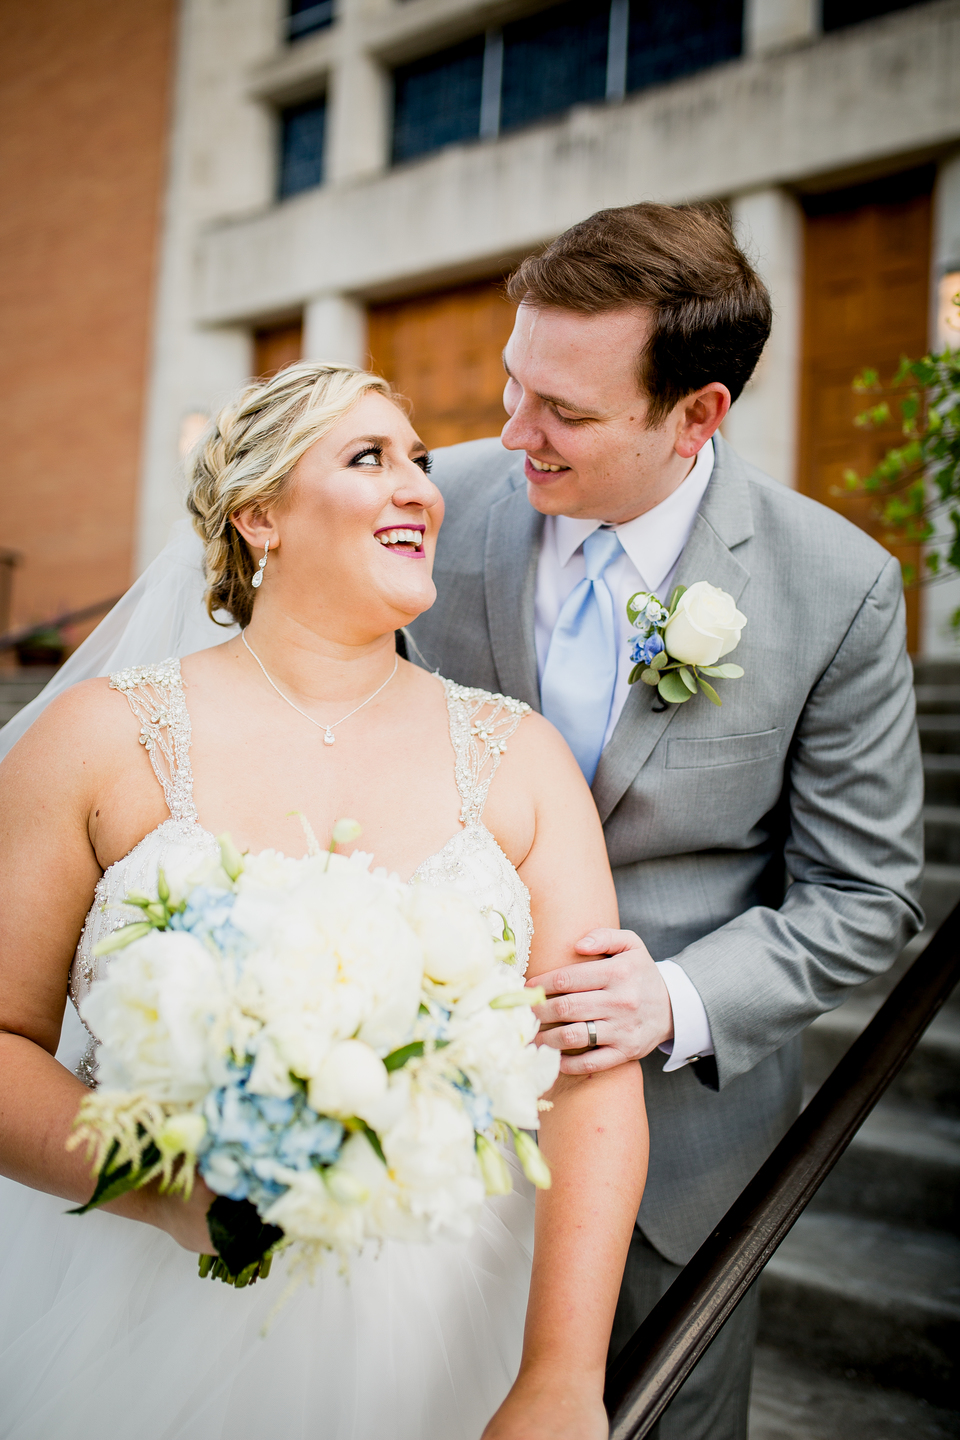 Charming Nashville wedding: Charming & Fun Hutton Hotel Nashville Wedding